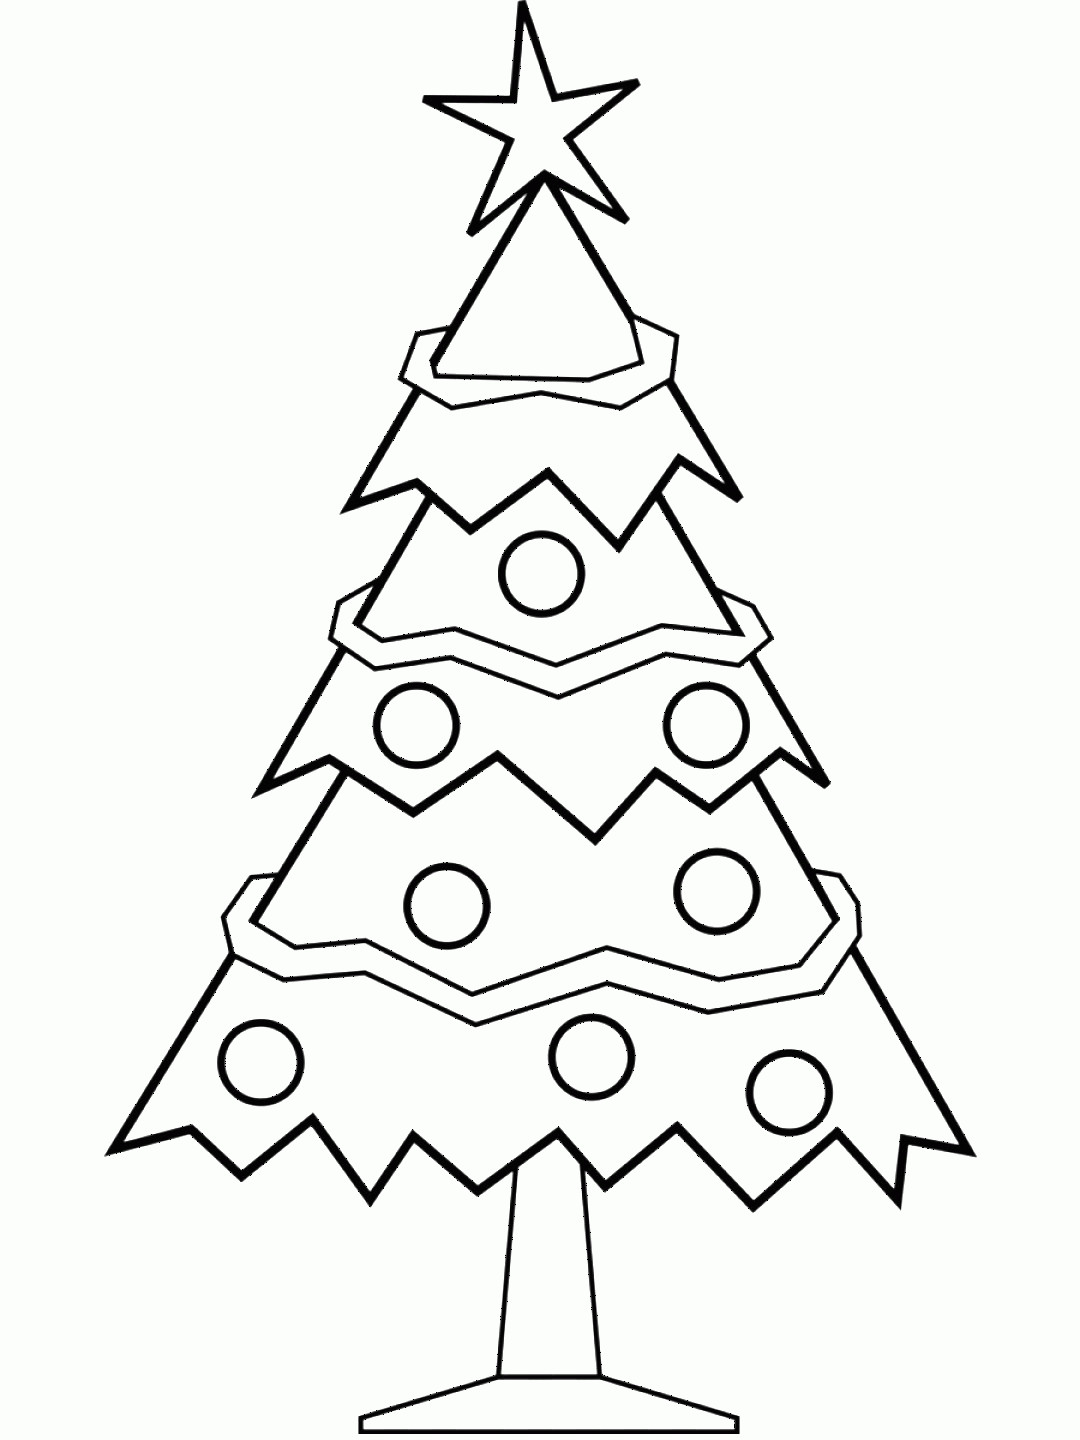 Black And White Christmas Ornament Vector Art: Clip Art Christmas Day Christmas Tree Vector Graph Black White Christmas Tree Design Christmas Tree